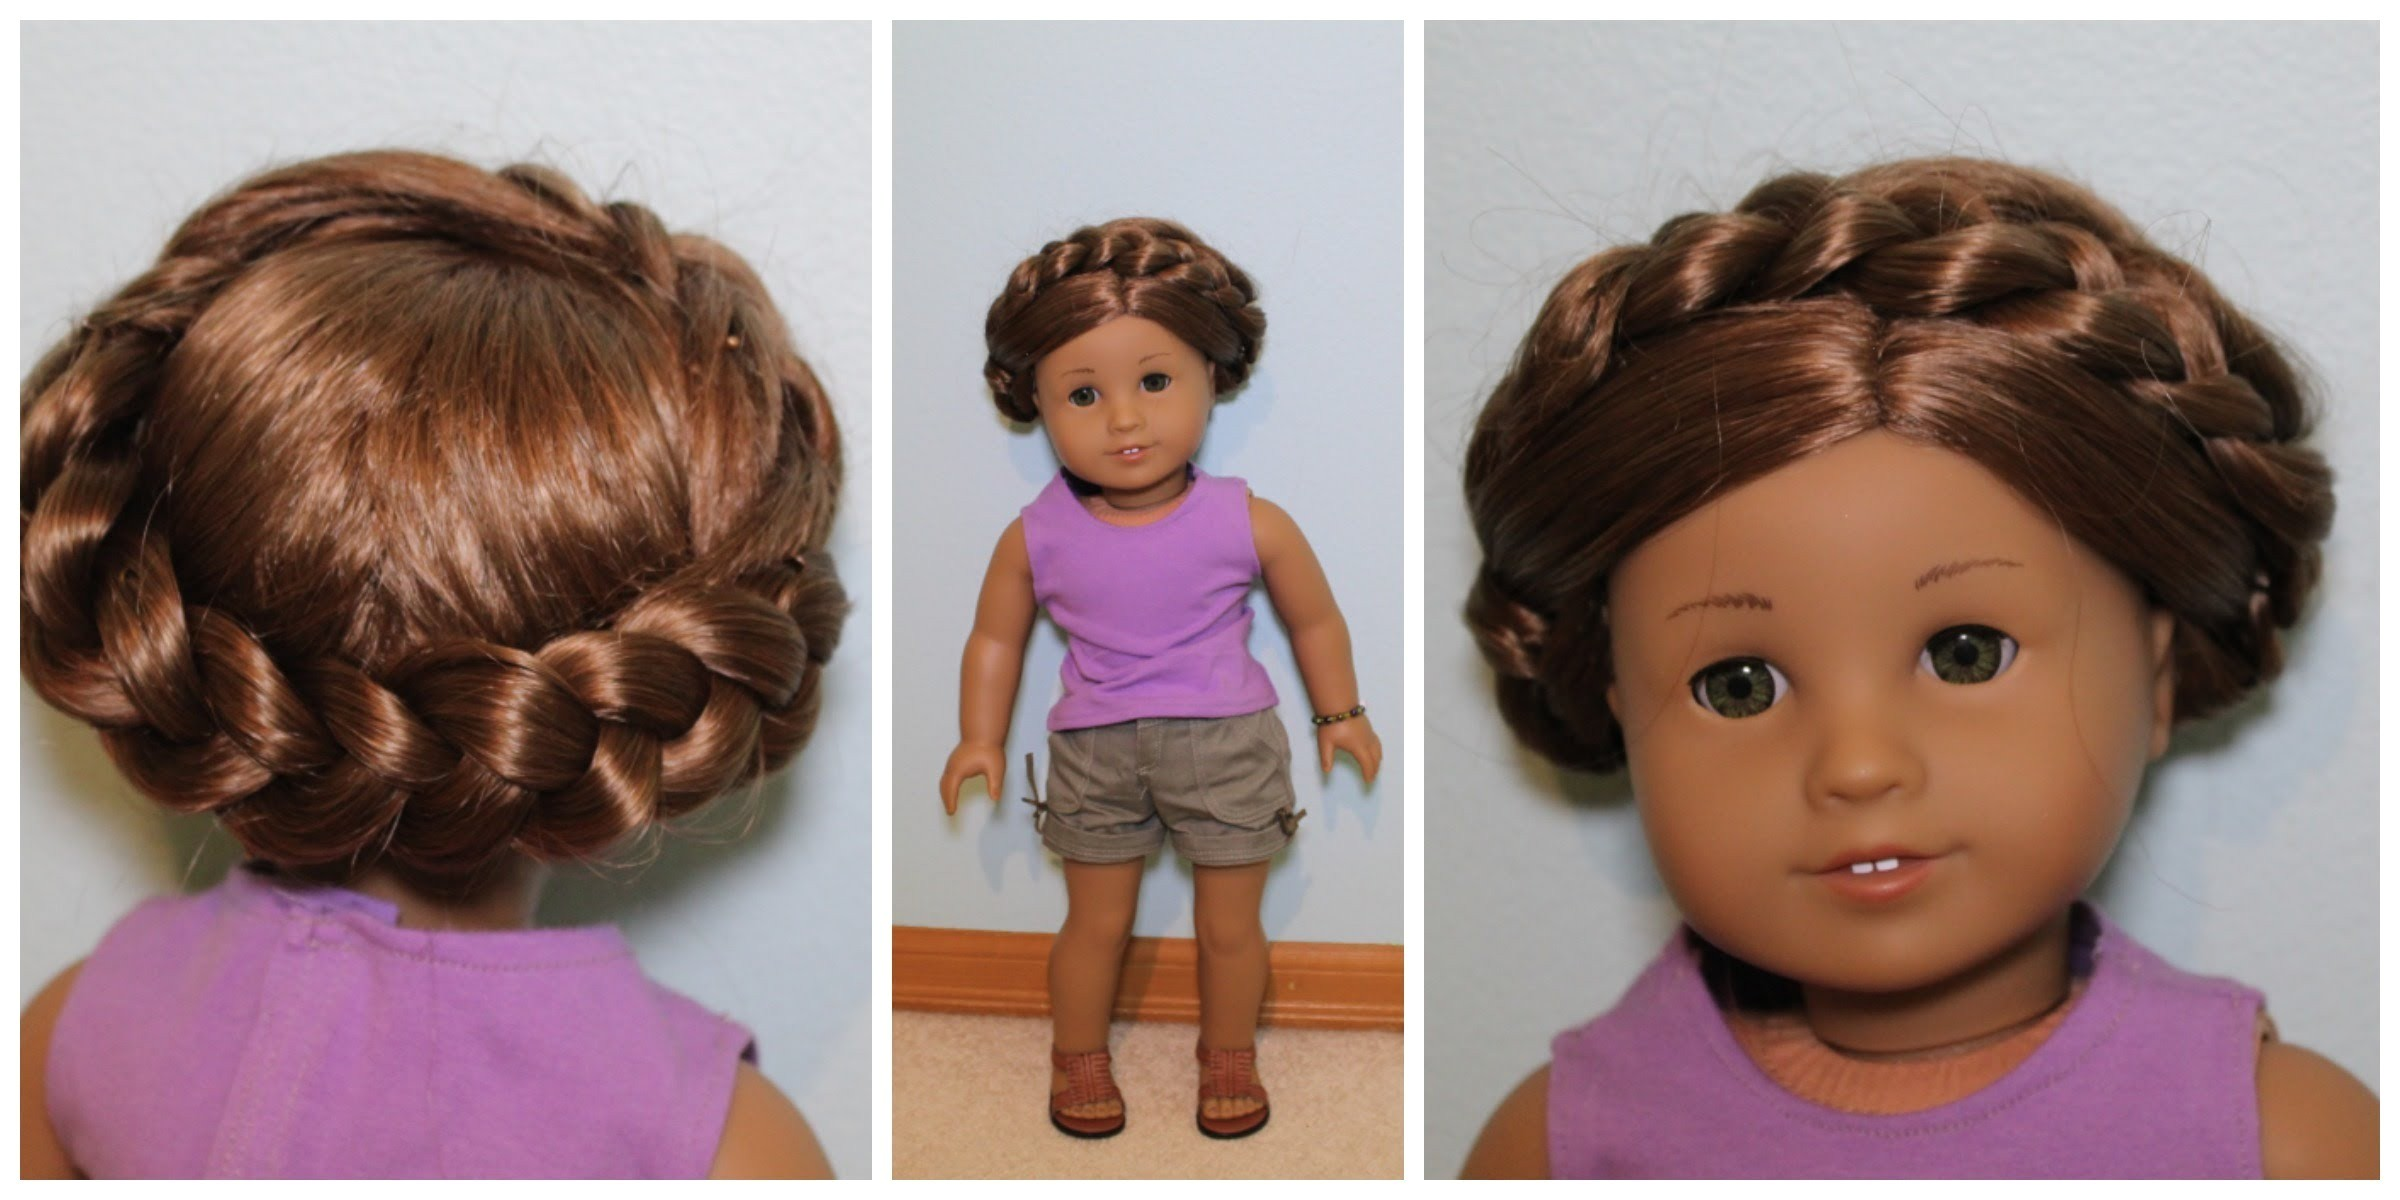 Ag Hair Styles Inspirational Cute and Easy Hairstyles for Your American Girl Doll New Ag